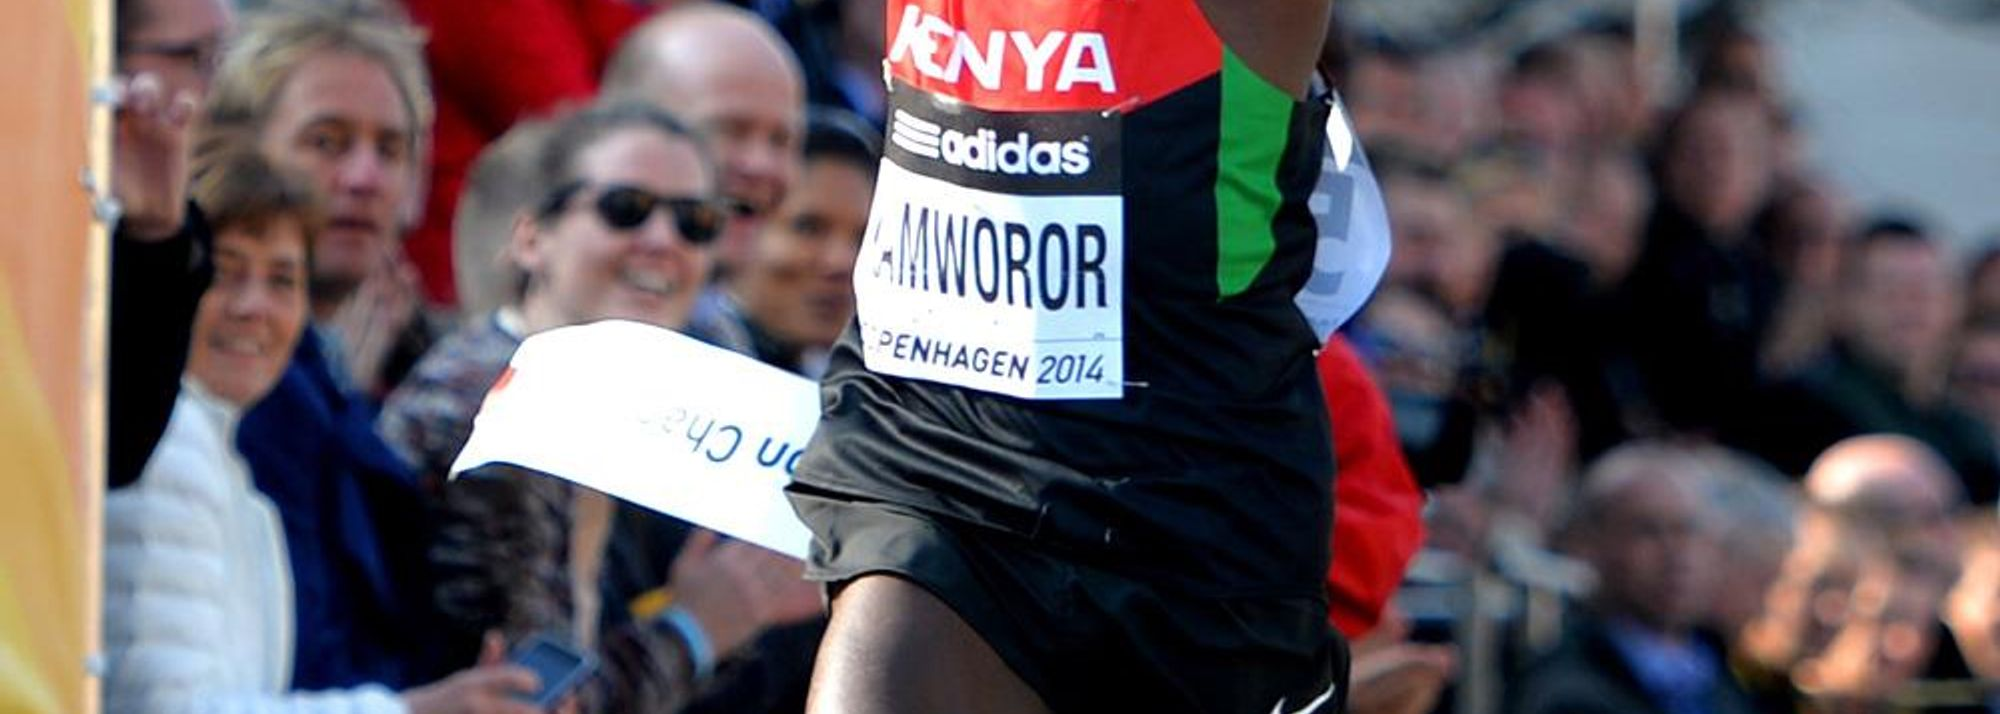 No sooner had Kenya's Geoffrey Kamworor deposed the dominant half marathon runner of the past decade, Zersenay Tadese, at the IAAF World Half Marathon Championships than he was setting his sights even higher – at the world record of 58:23 set by the man who has won five golds and a silver in the past six editions of this event.